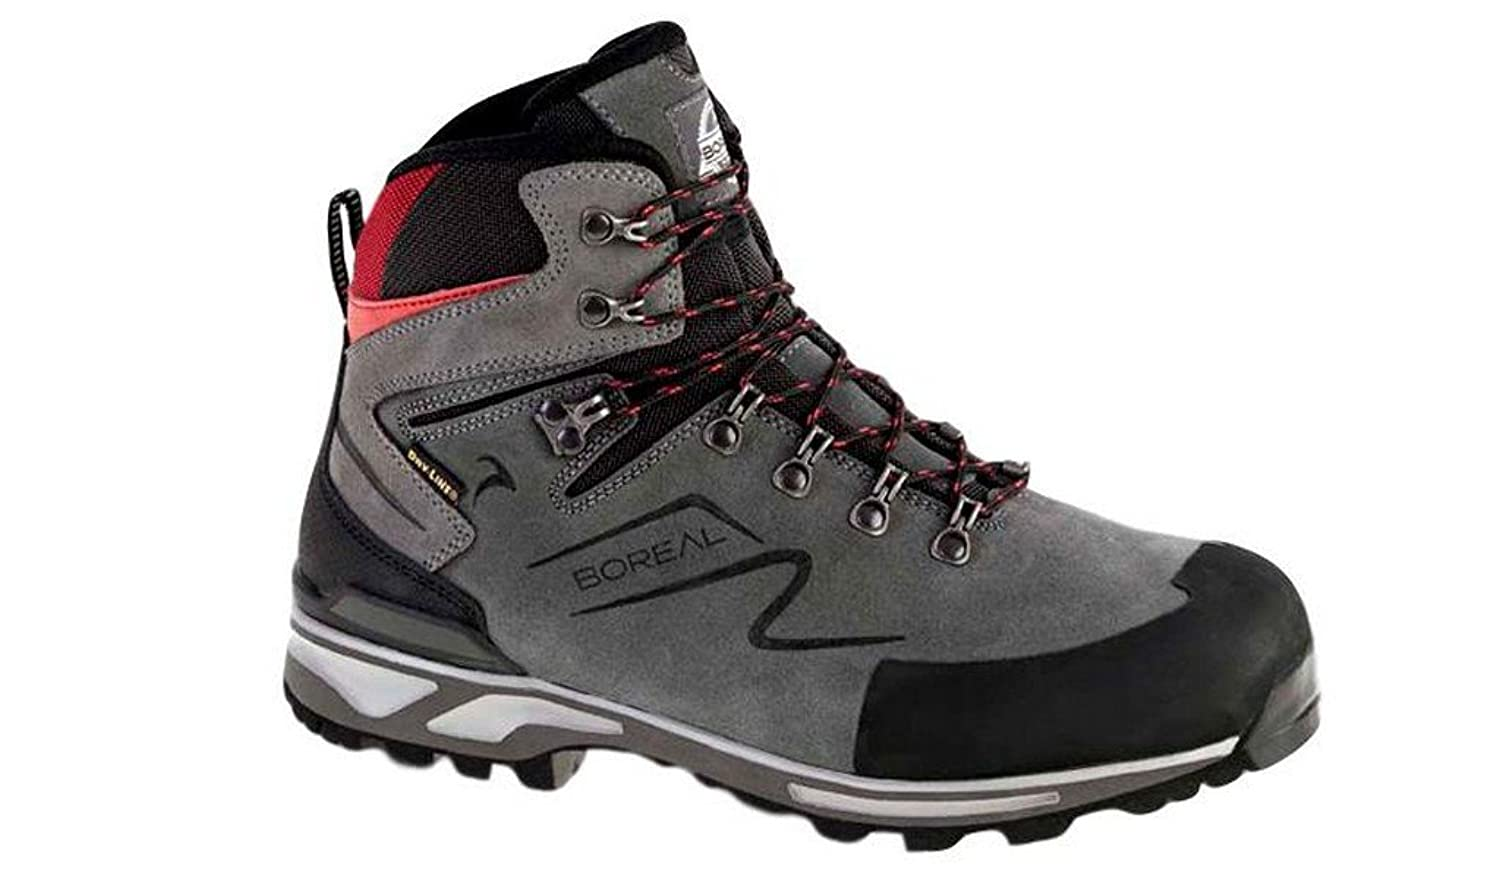 Athletic Boots Mens Yucatan Leather Dry Line WP Trekking 44854